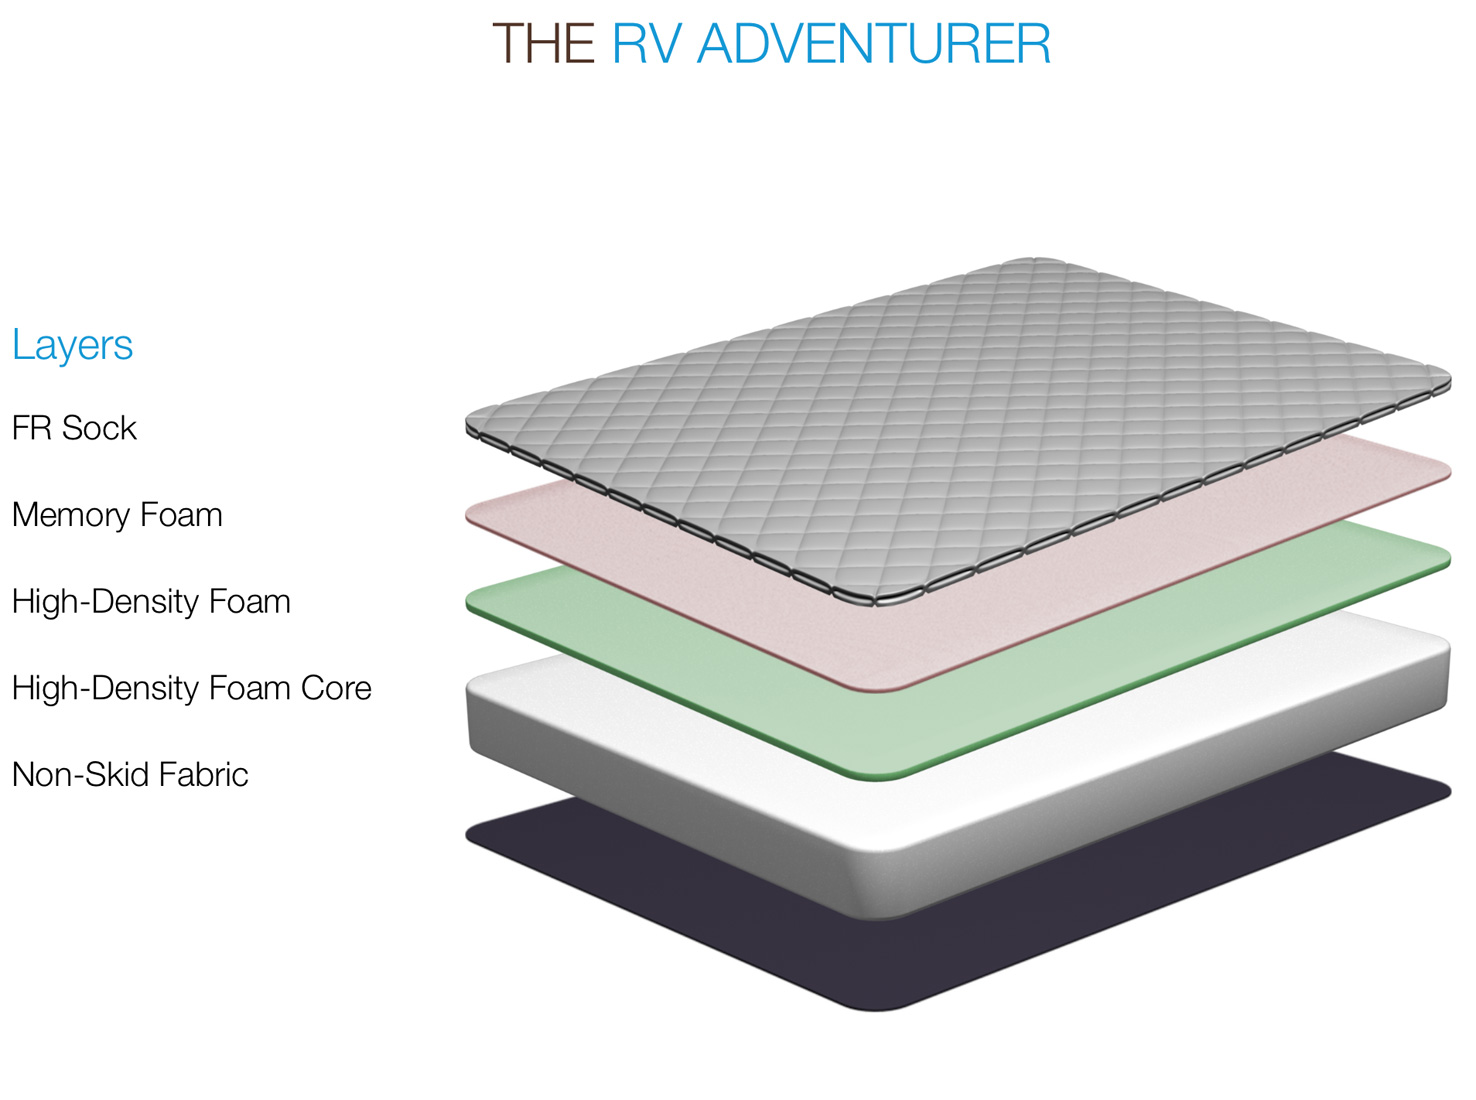 foam mattresses the adventurer aeropedic rv mattress aer